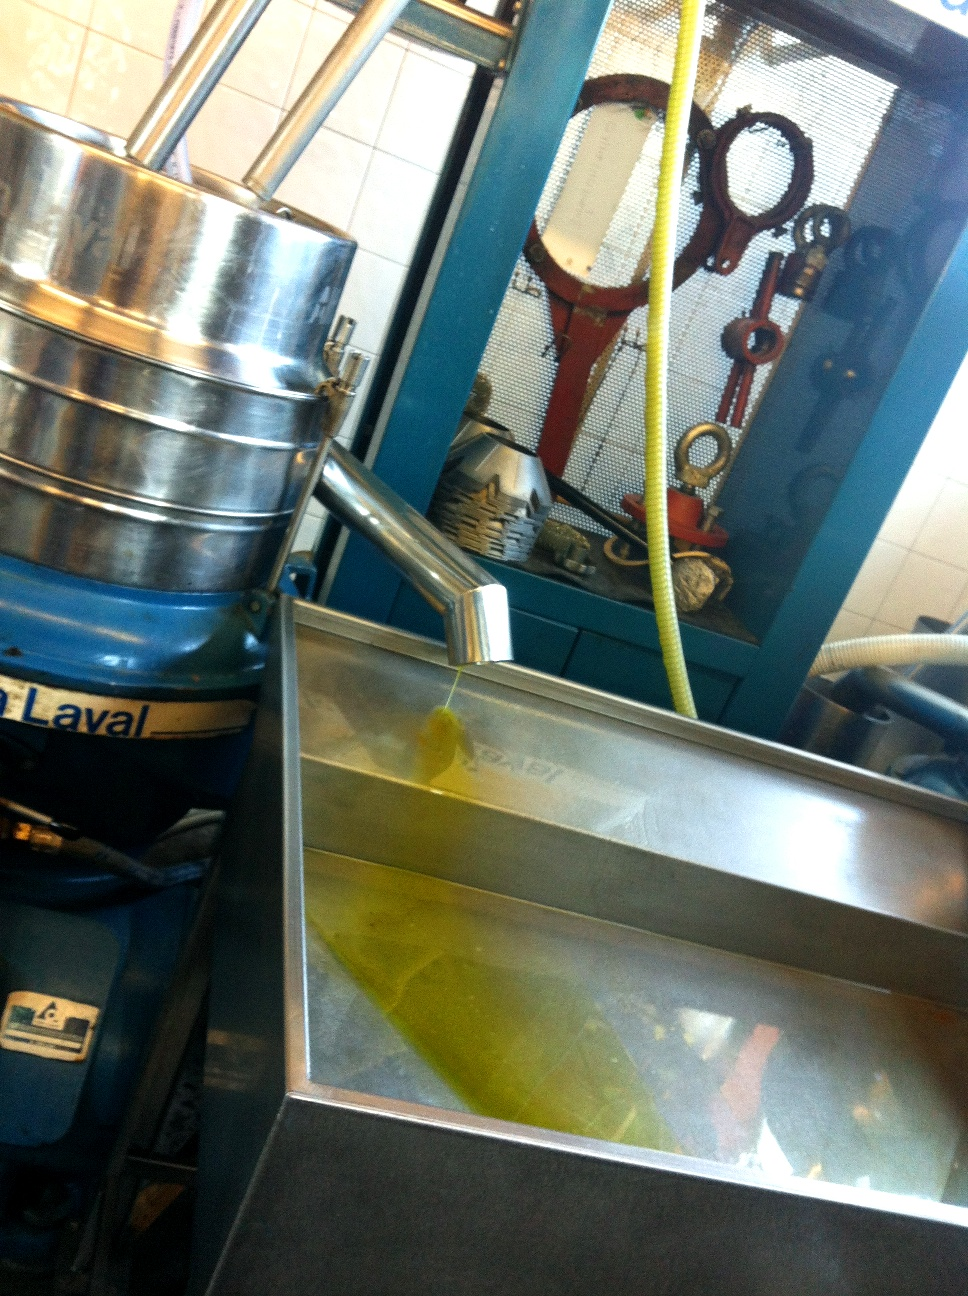 A stream of olive oil